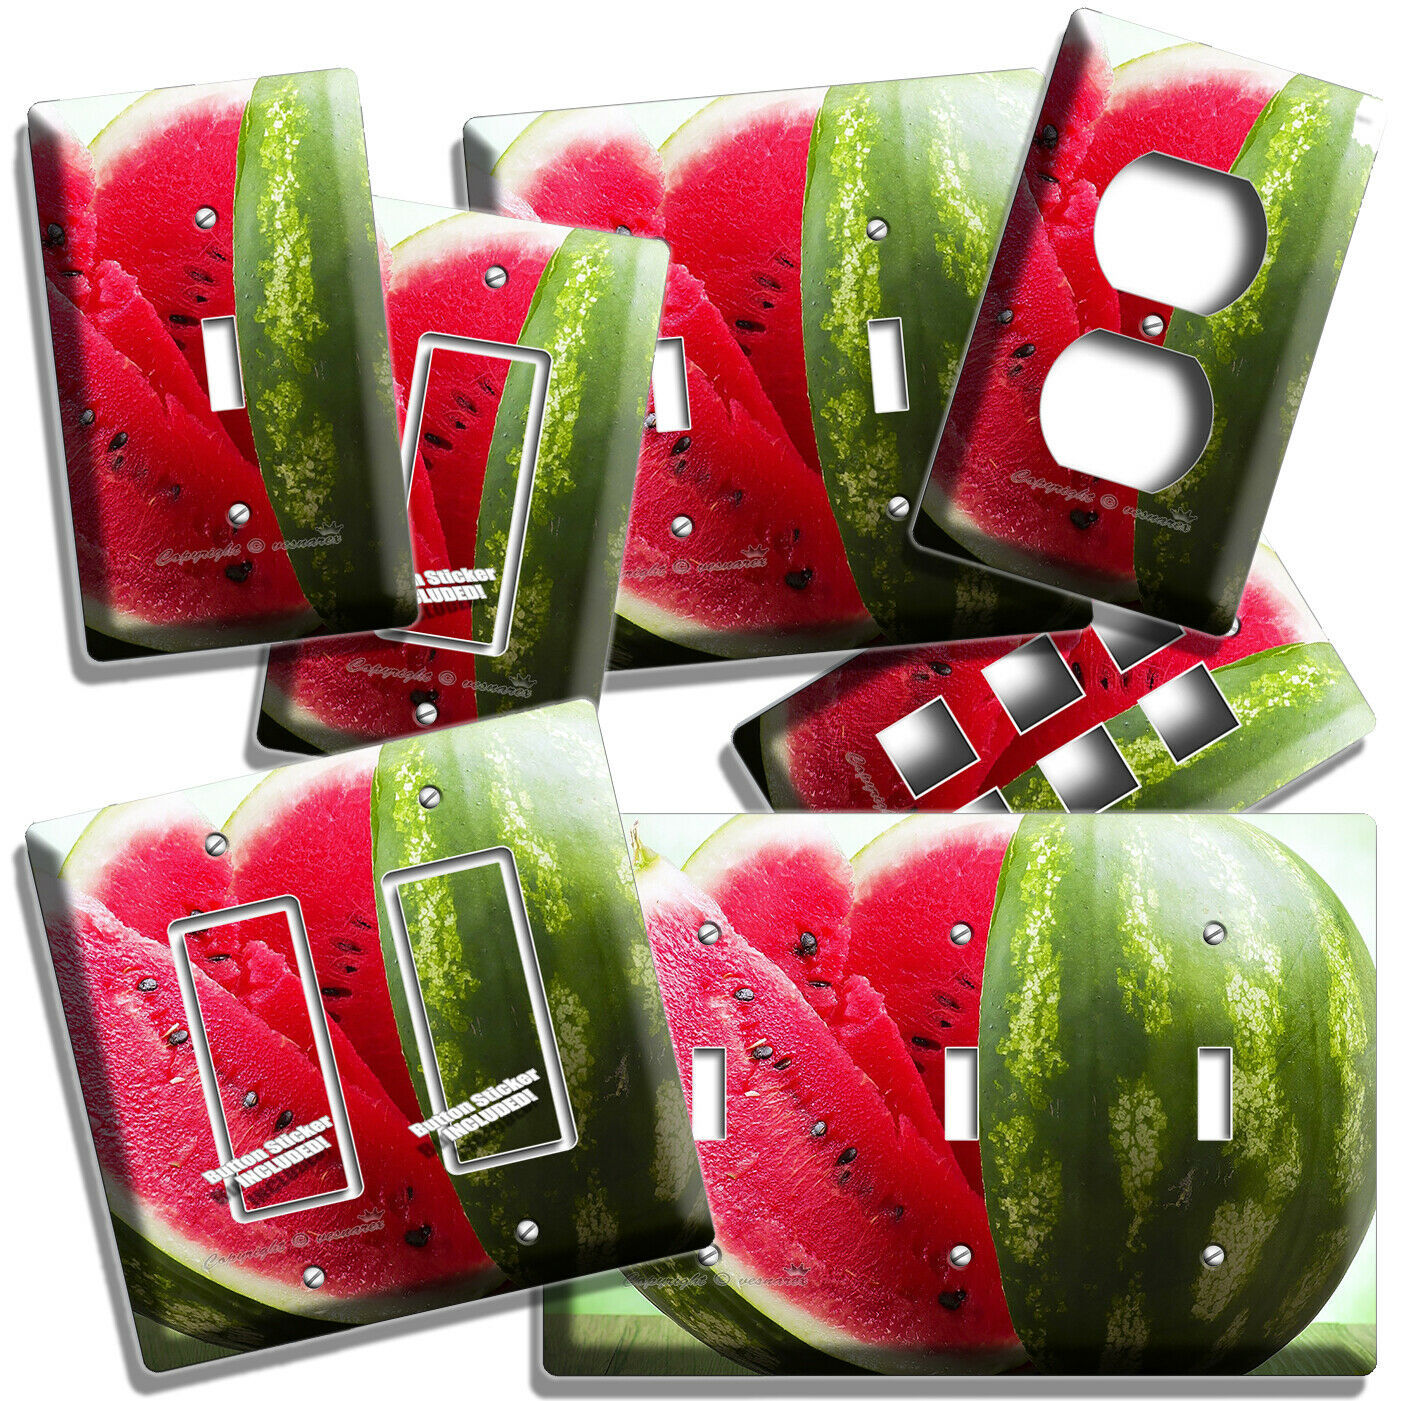 Primary image for RED WATERMELON SLICES LIGHT SWITCH OUTLET WALL PLATES KITCHEN PANTRY ROOM DECOR